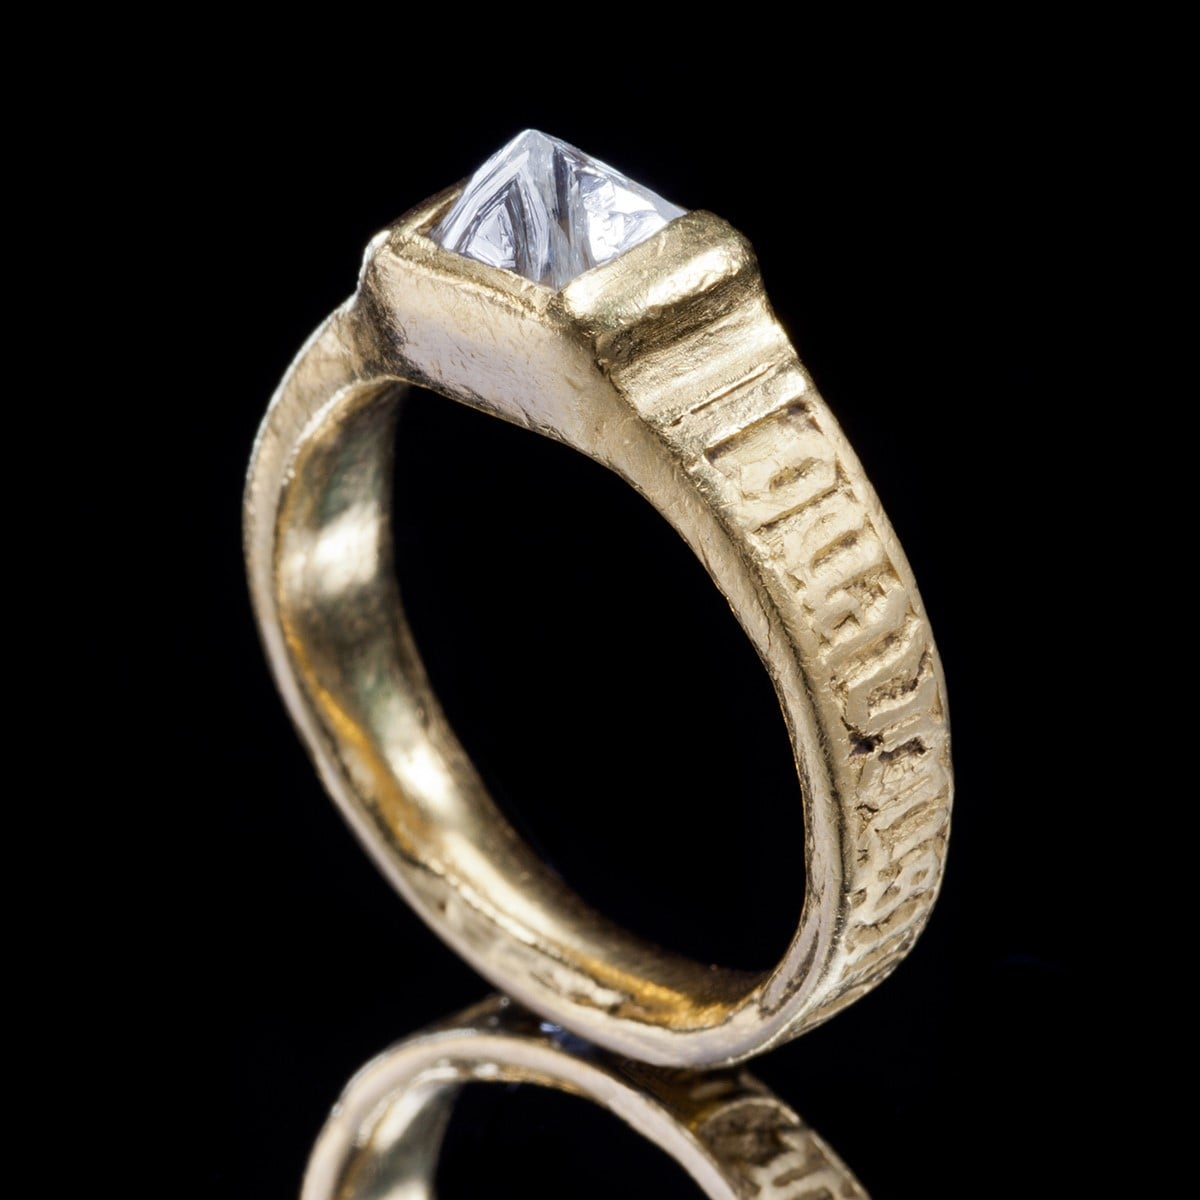 """The Uncut Diamond Ring is the revival of a style seen during the 15th century. A poesy, """"When we are apart, think of me"""" is engraved on the hoop of the ring in Norman French. """"Renaissance"""